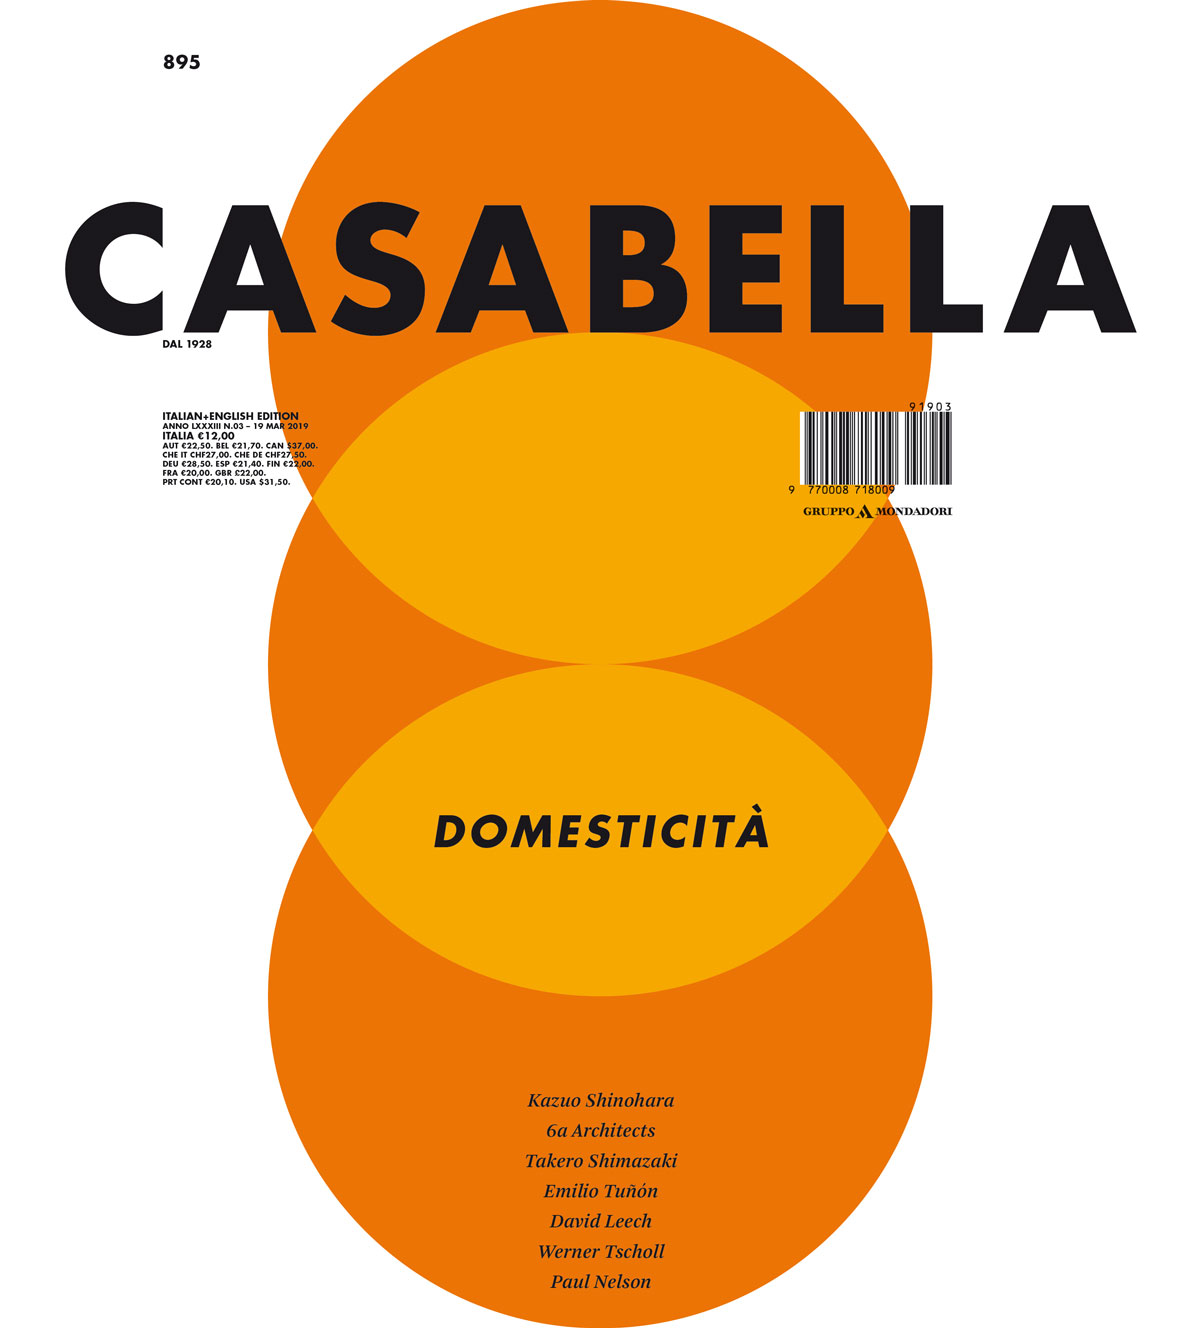 New Materials Dossier @Casabella (IT) – Article